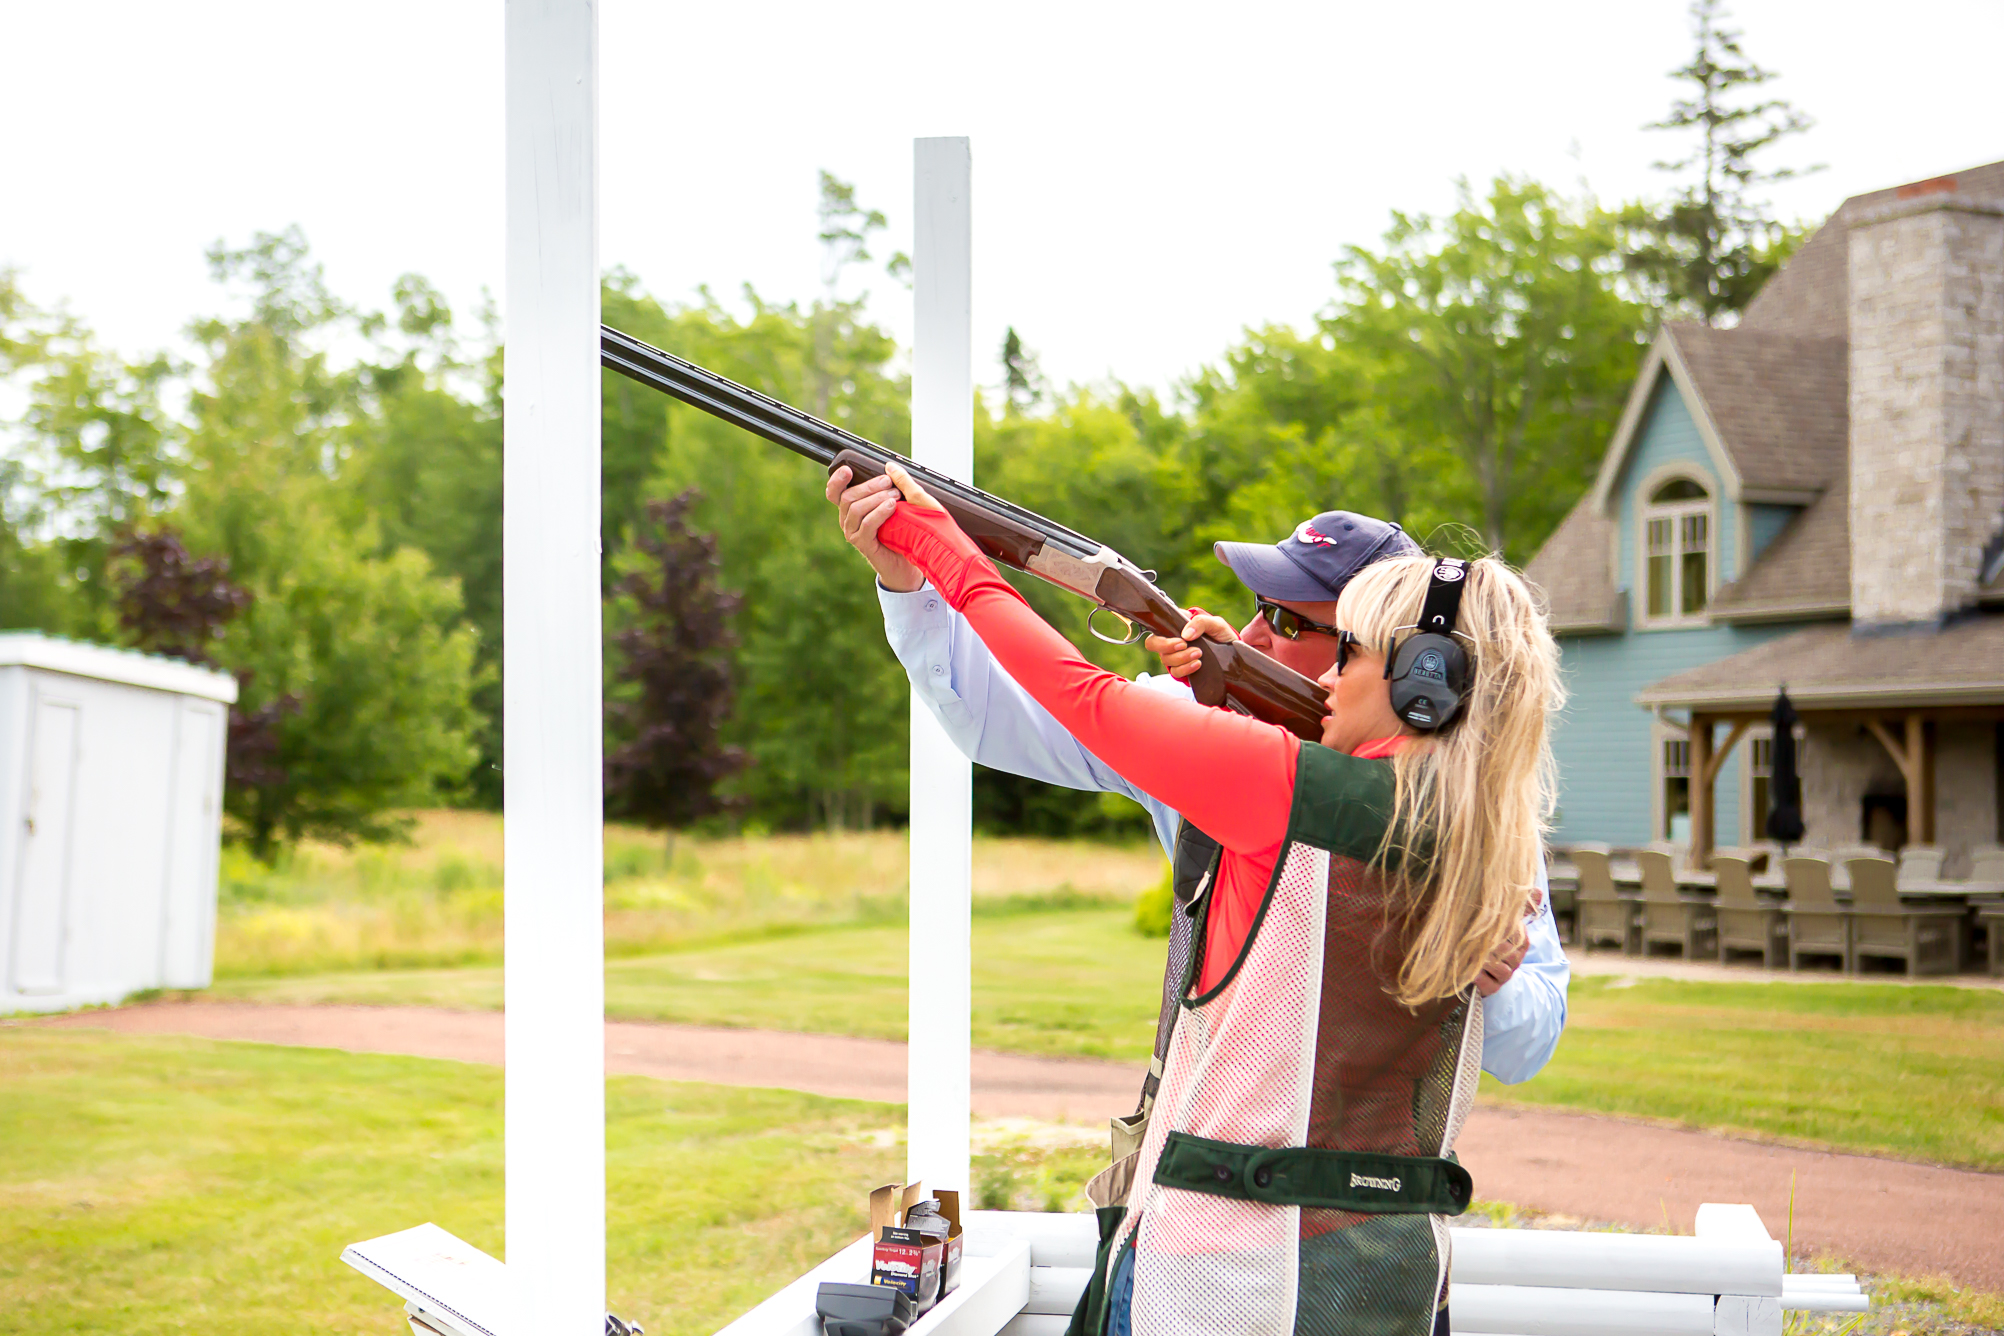 Far from being a boys' club, sport shooting is growing in popularity amongst women, and here's why.